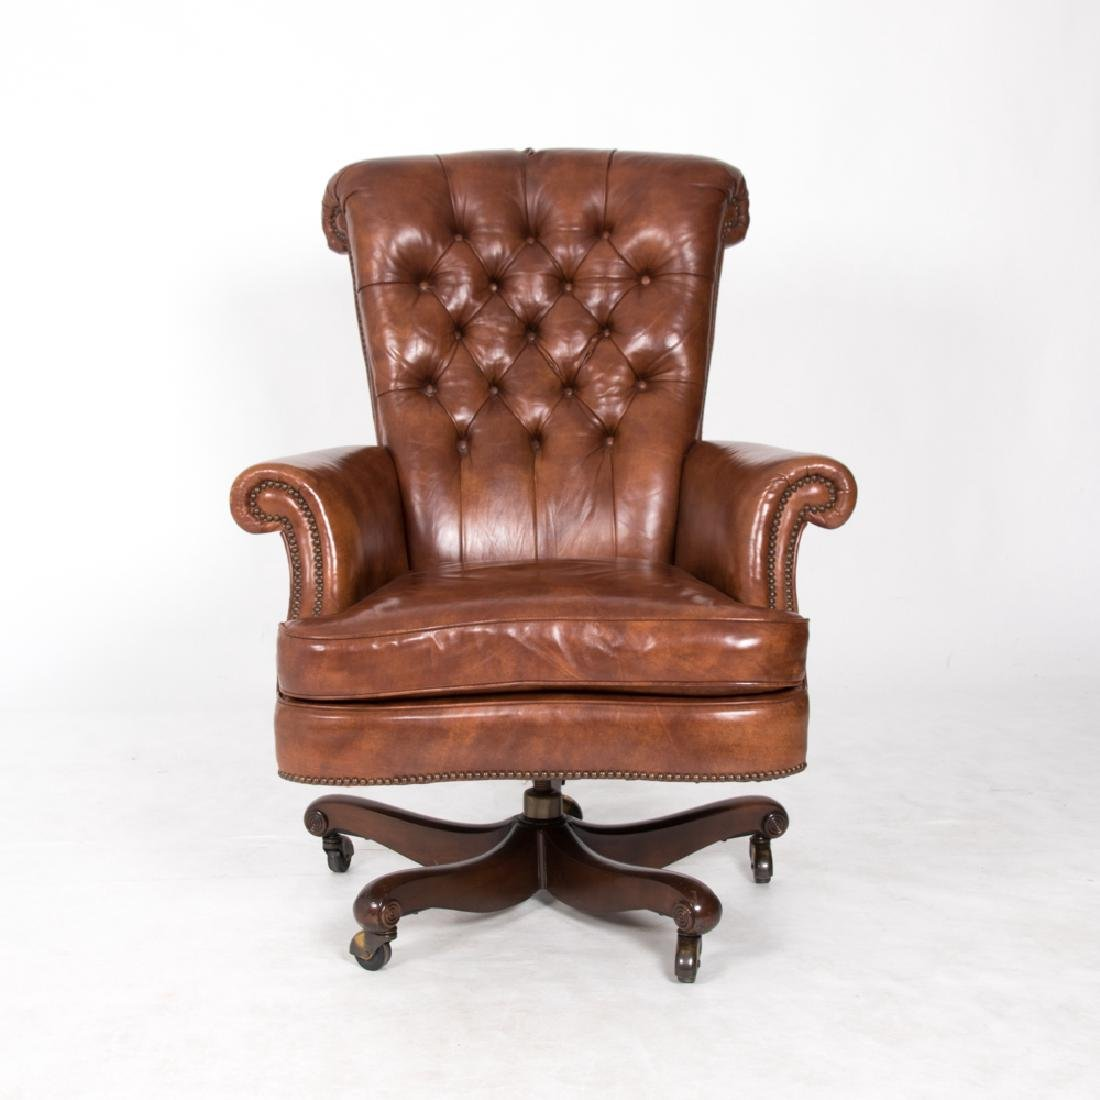 A Tufted Faux Leather Desk Swivel Chair, 20th Century.